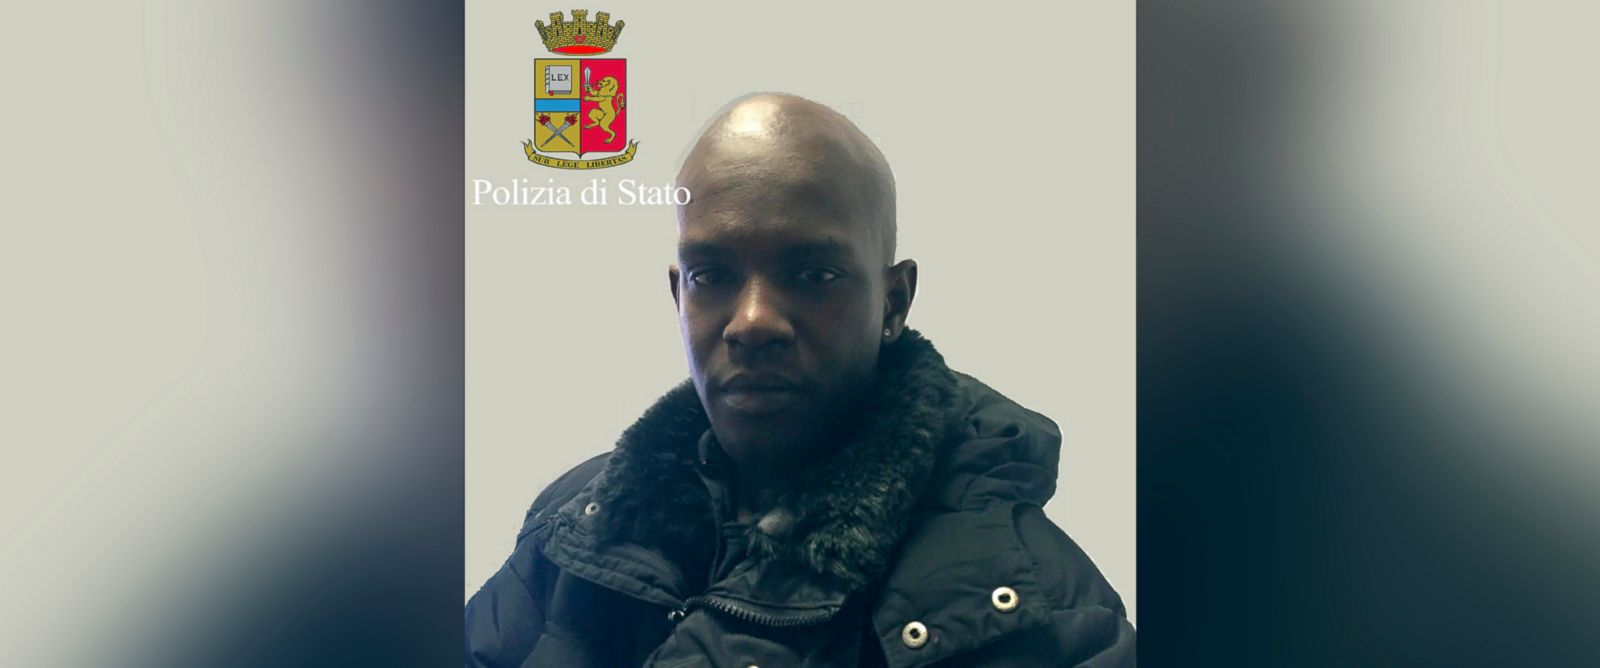 PHOTO: Diaw Cheikh Tidiane is seen in this undated handout image released by Italian Police on Jan. 14, 2016. Tidiane is a suspect in the death of U.S. citizen Ashley Olsen in Florence. Italy.